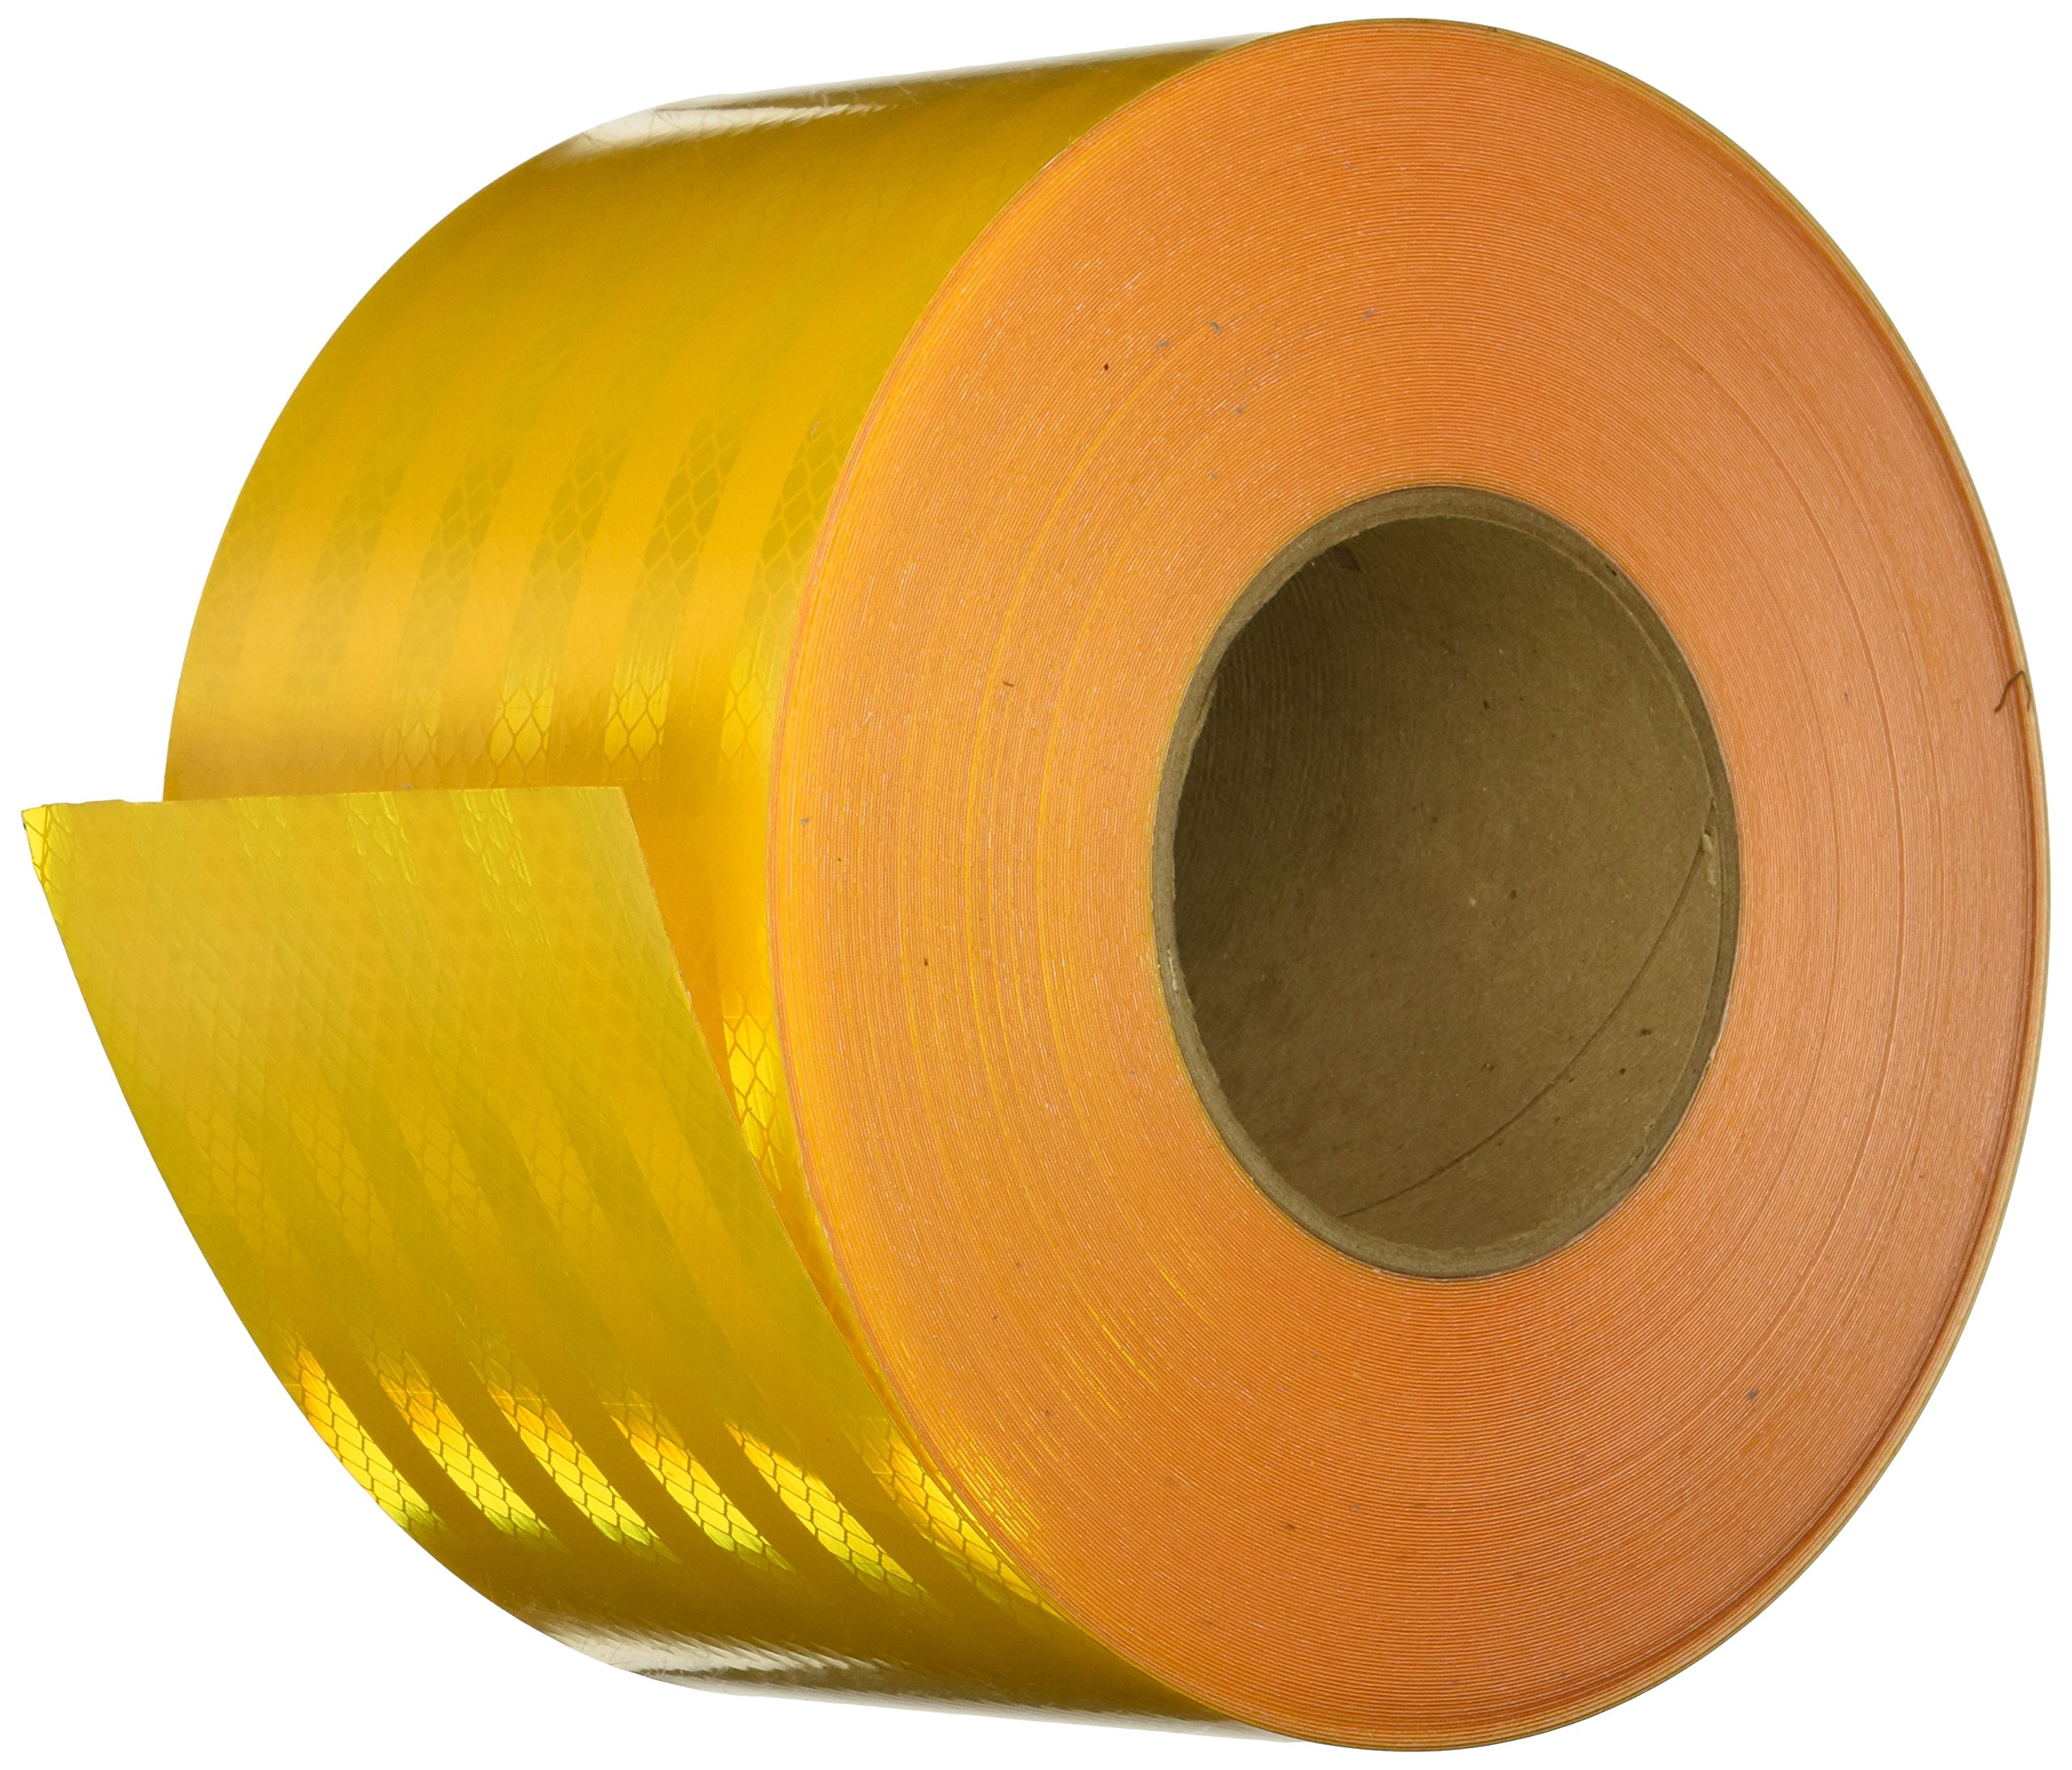 3M 3431 Yellow Micro Prismatic Sheeting Reflective Tape – 4 in. x 150 ft. Non Metalized Adhesive Tape Roll. Safety Tape